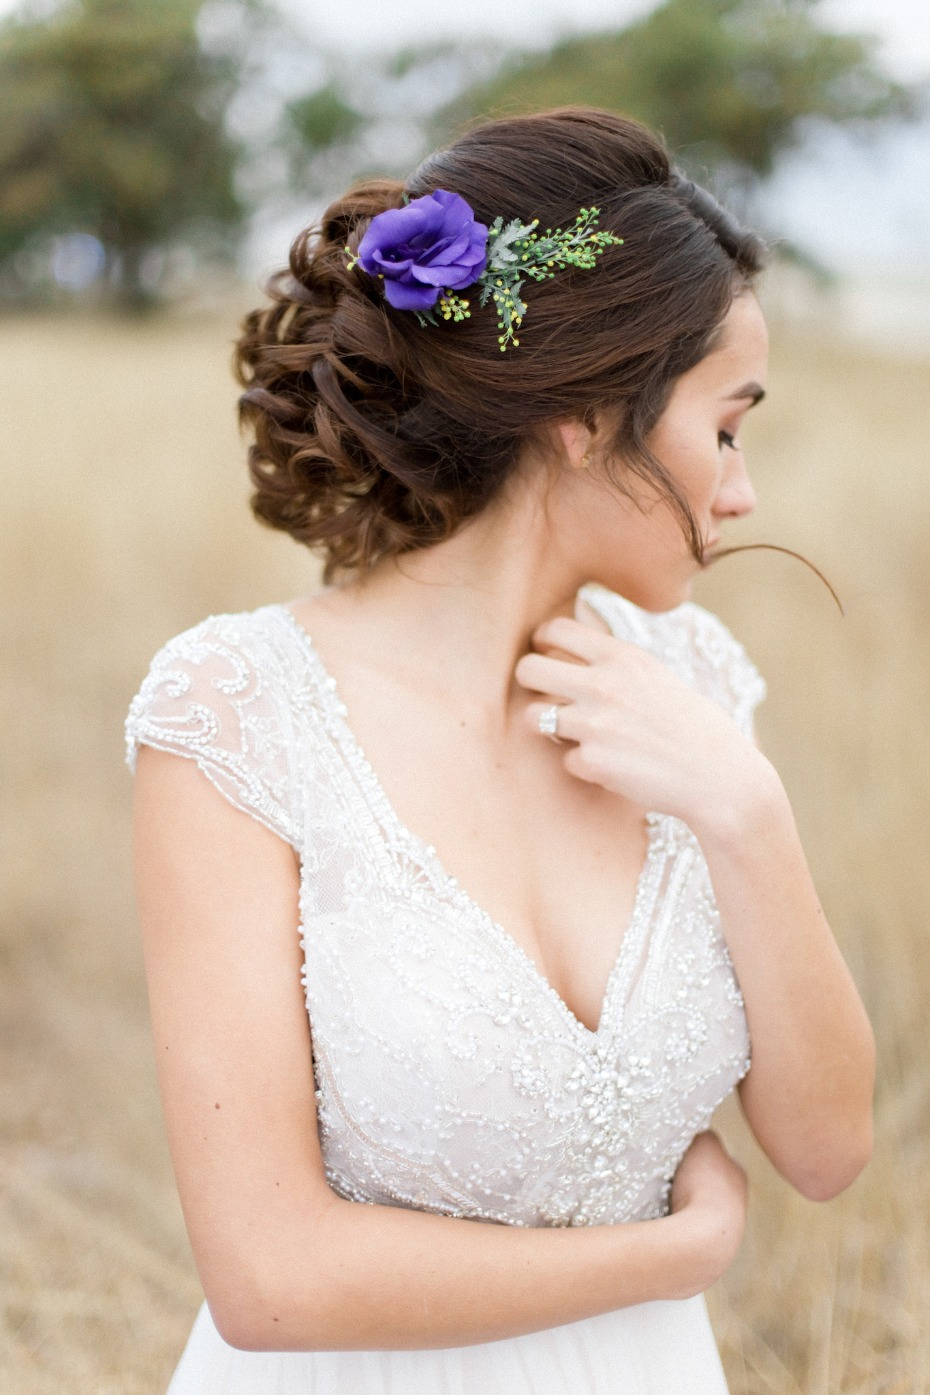 Beautiful hair with floral accessory